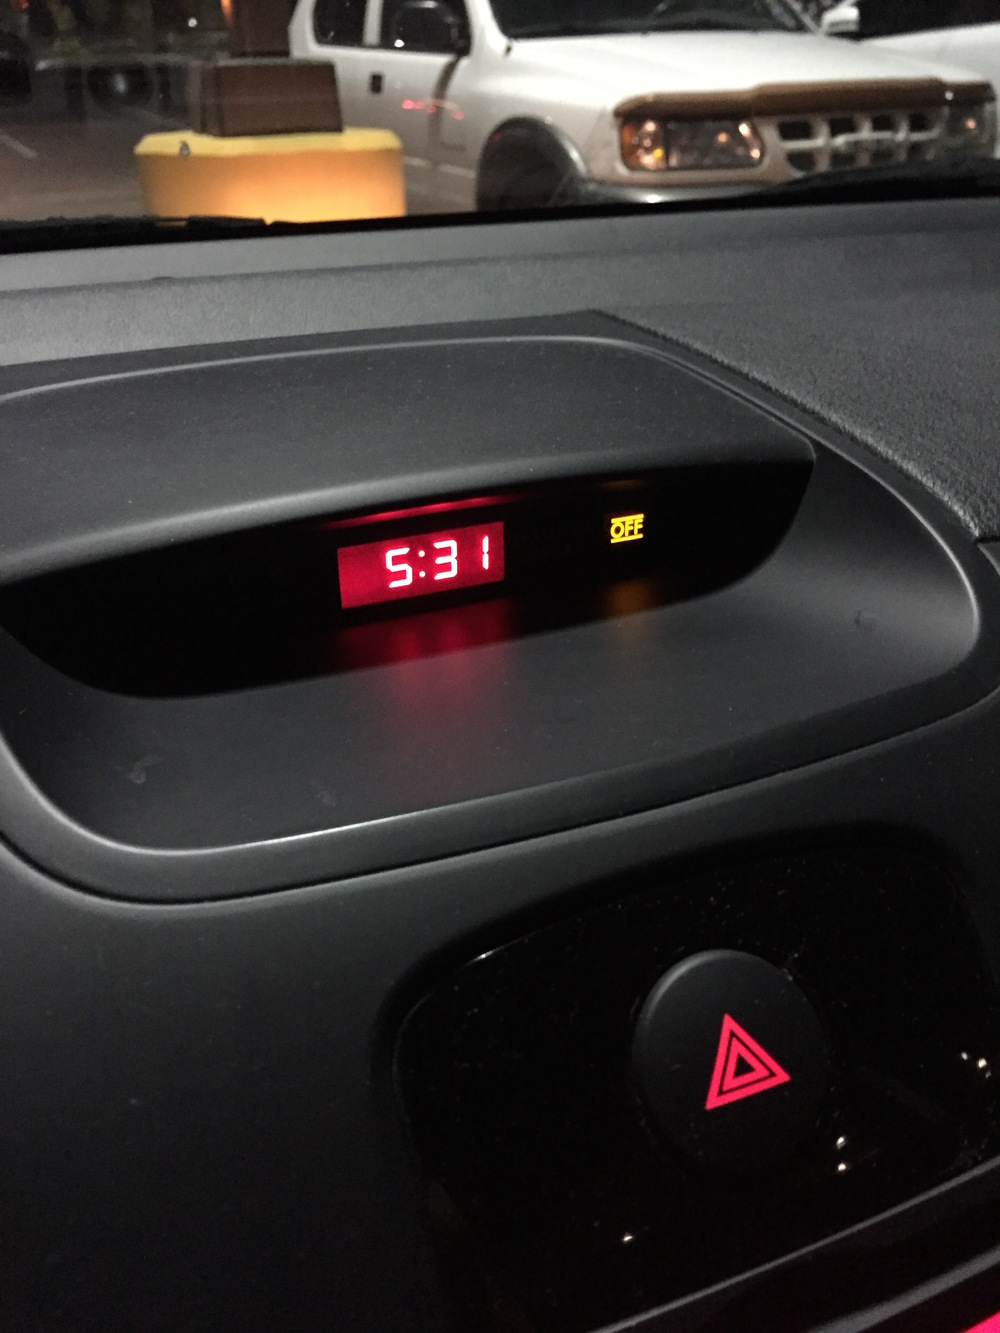 This is what my car's clock looks like in a Planet Fitness parking lot at 5:31 a.m.